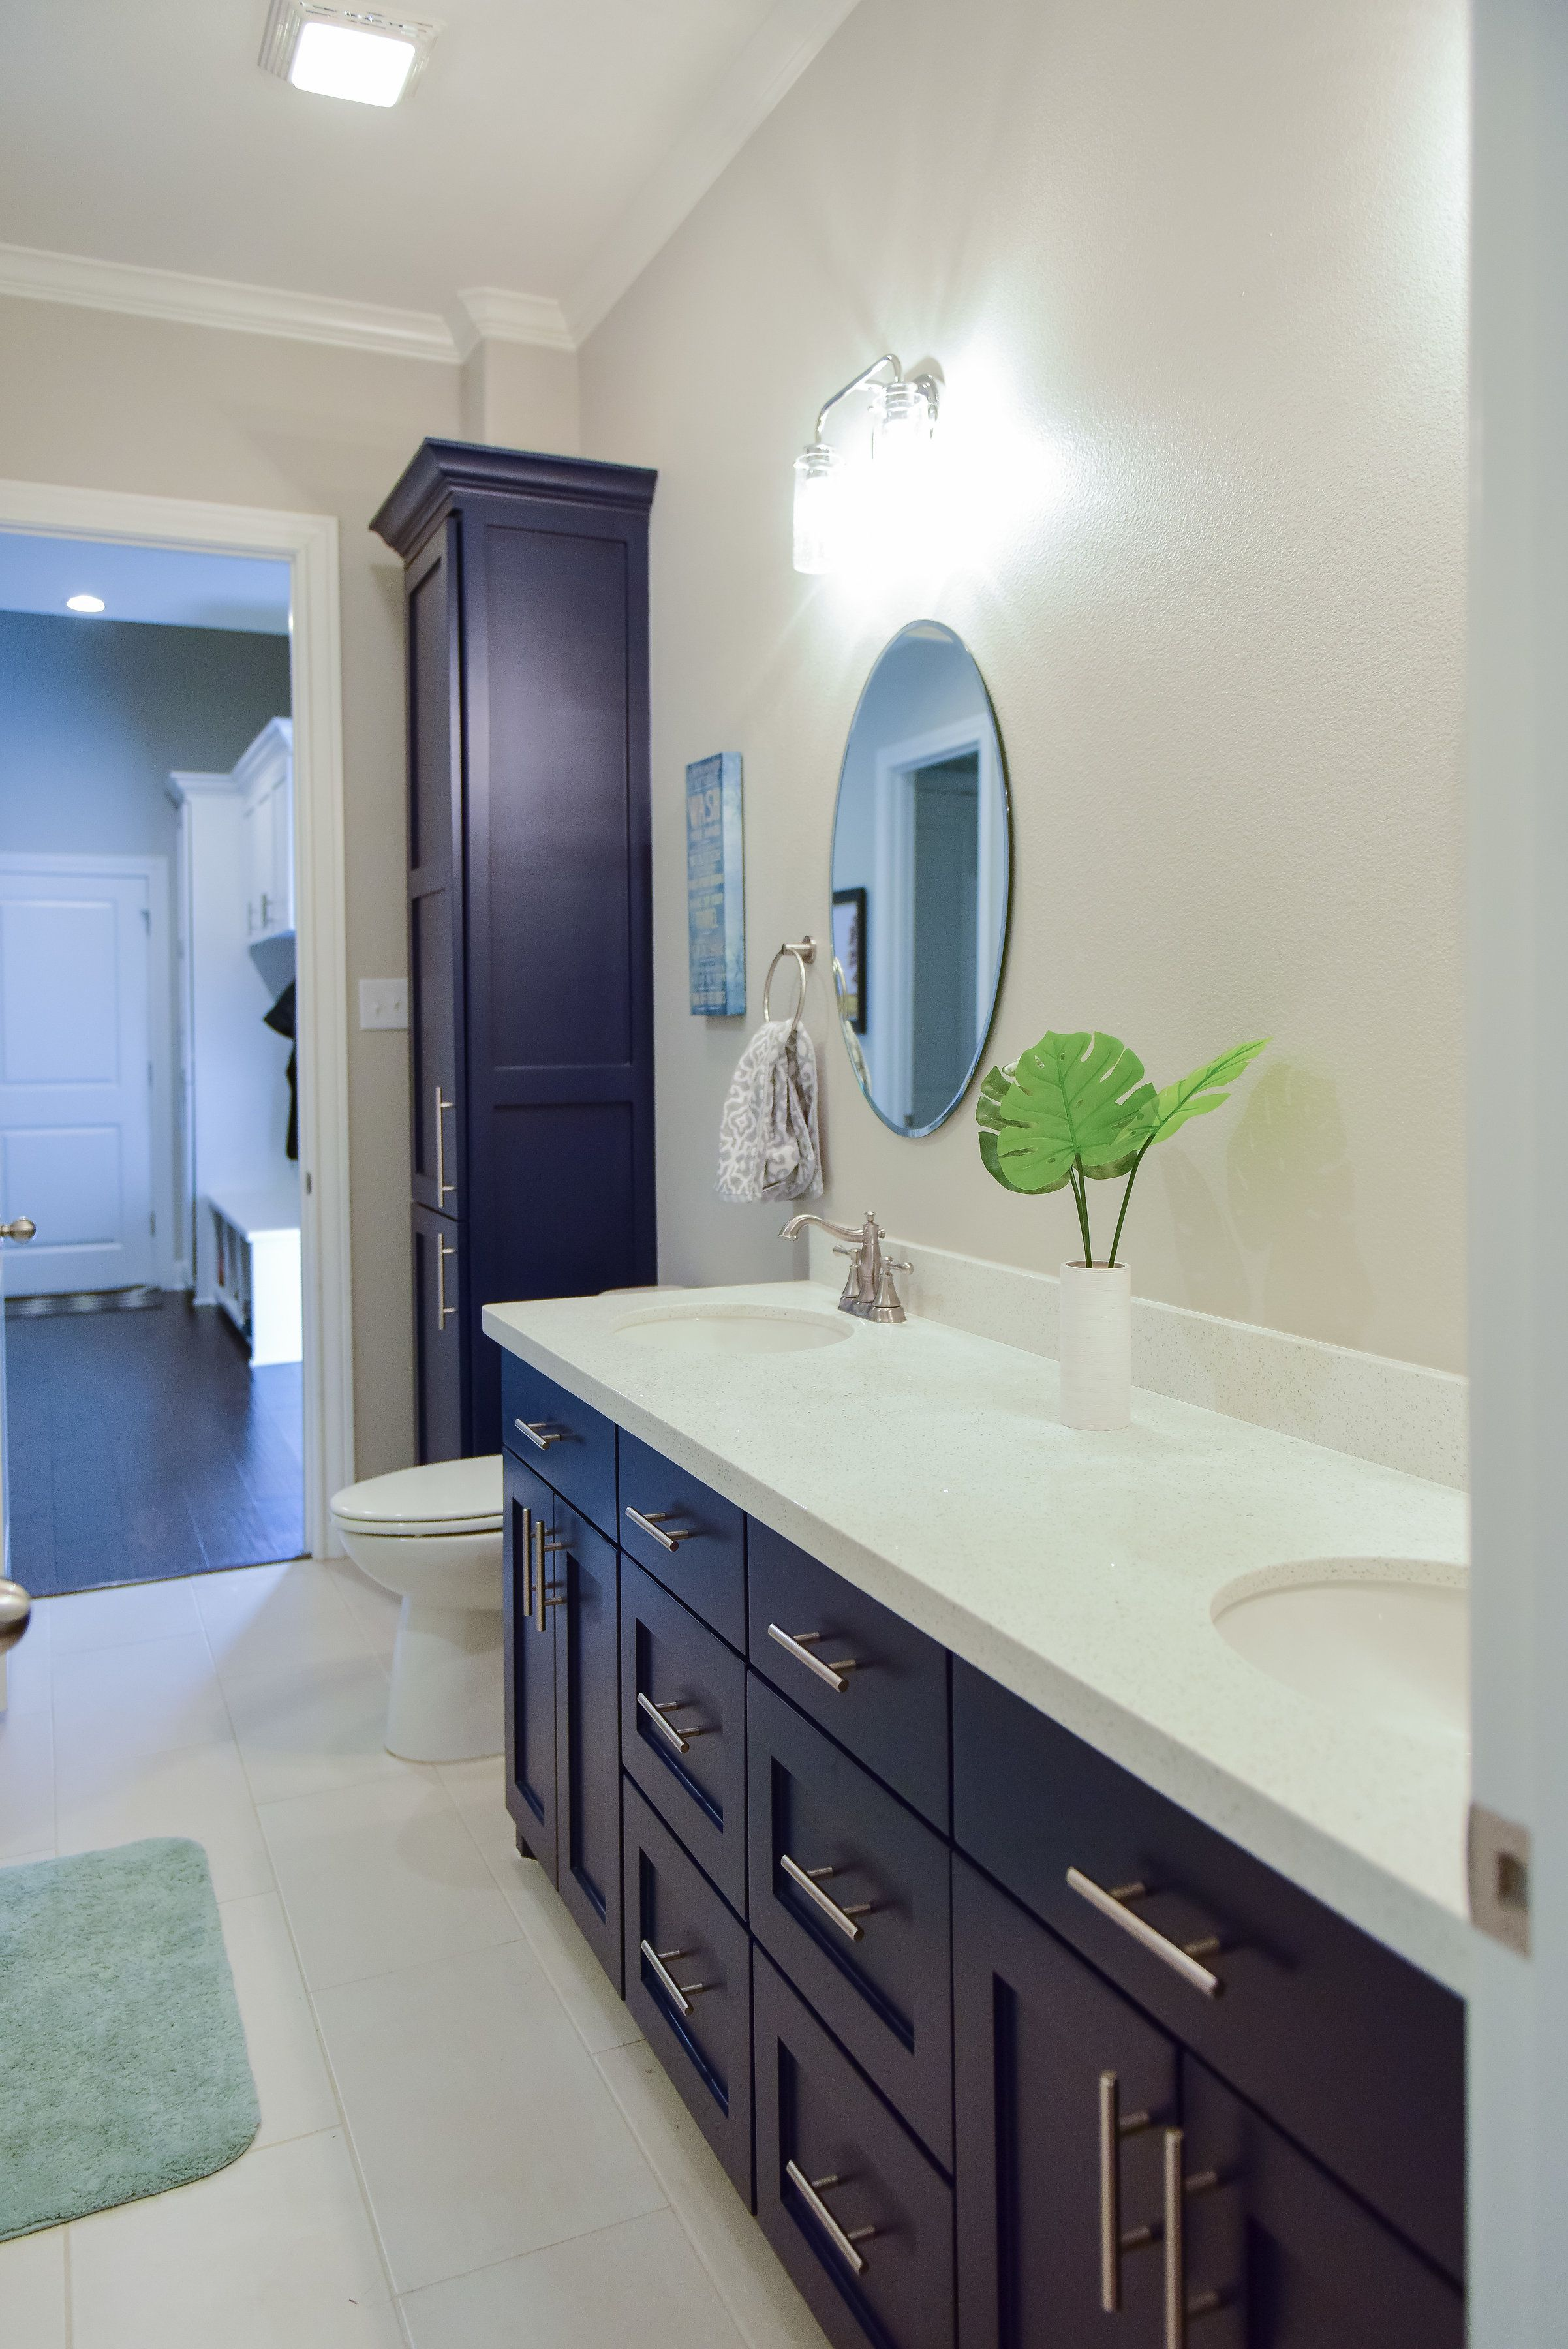 Dark blue shaker style cabinets with quartz counters and under mount